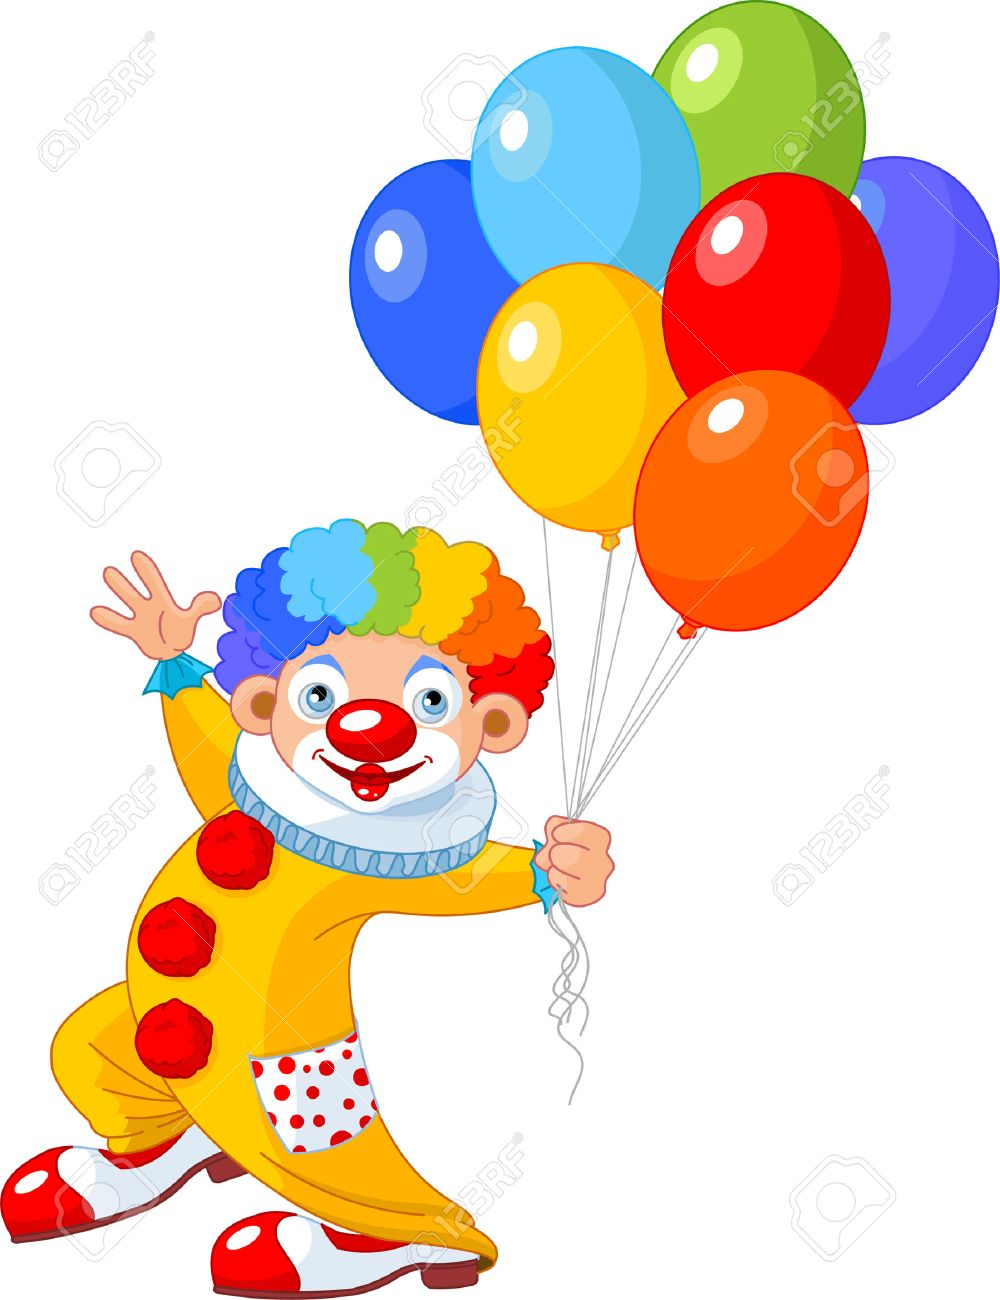 Clown Holding Balloons Clipart.